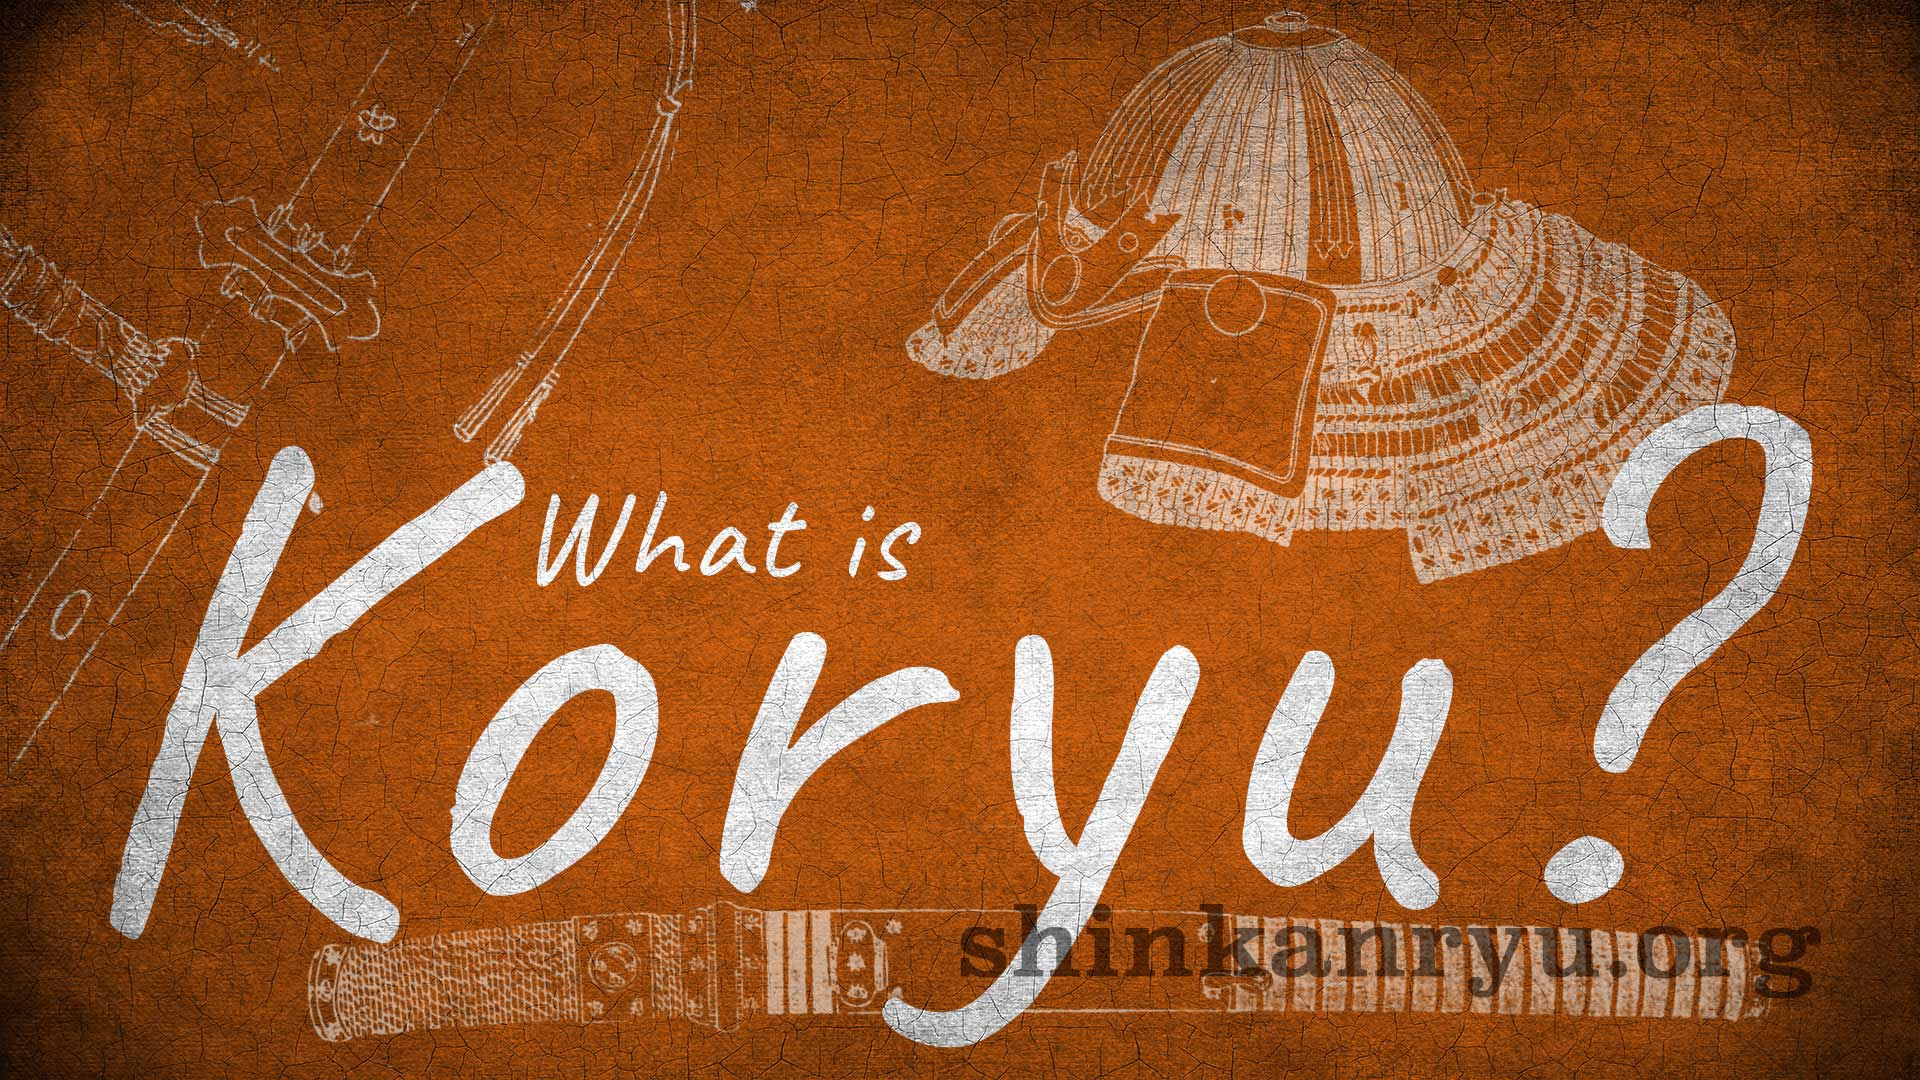 what is koryu